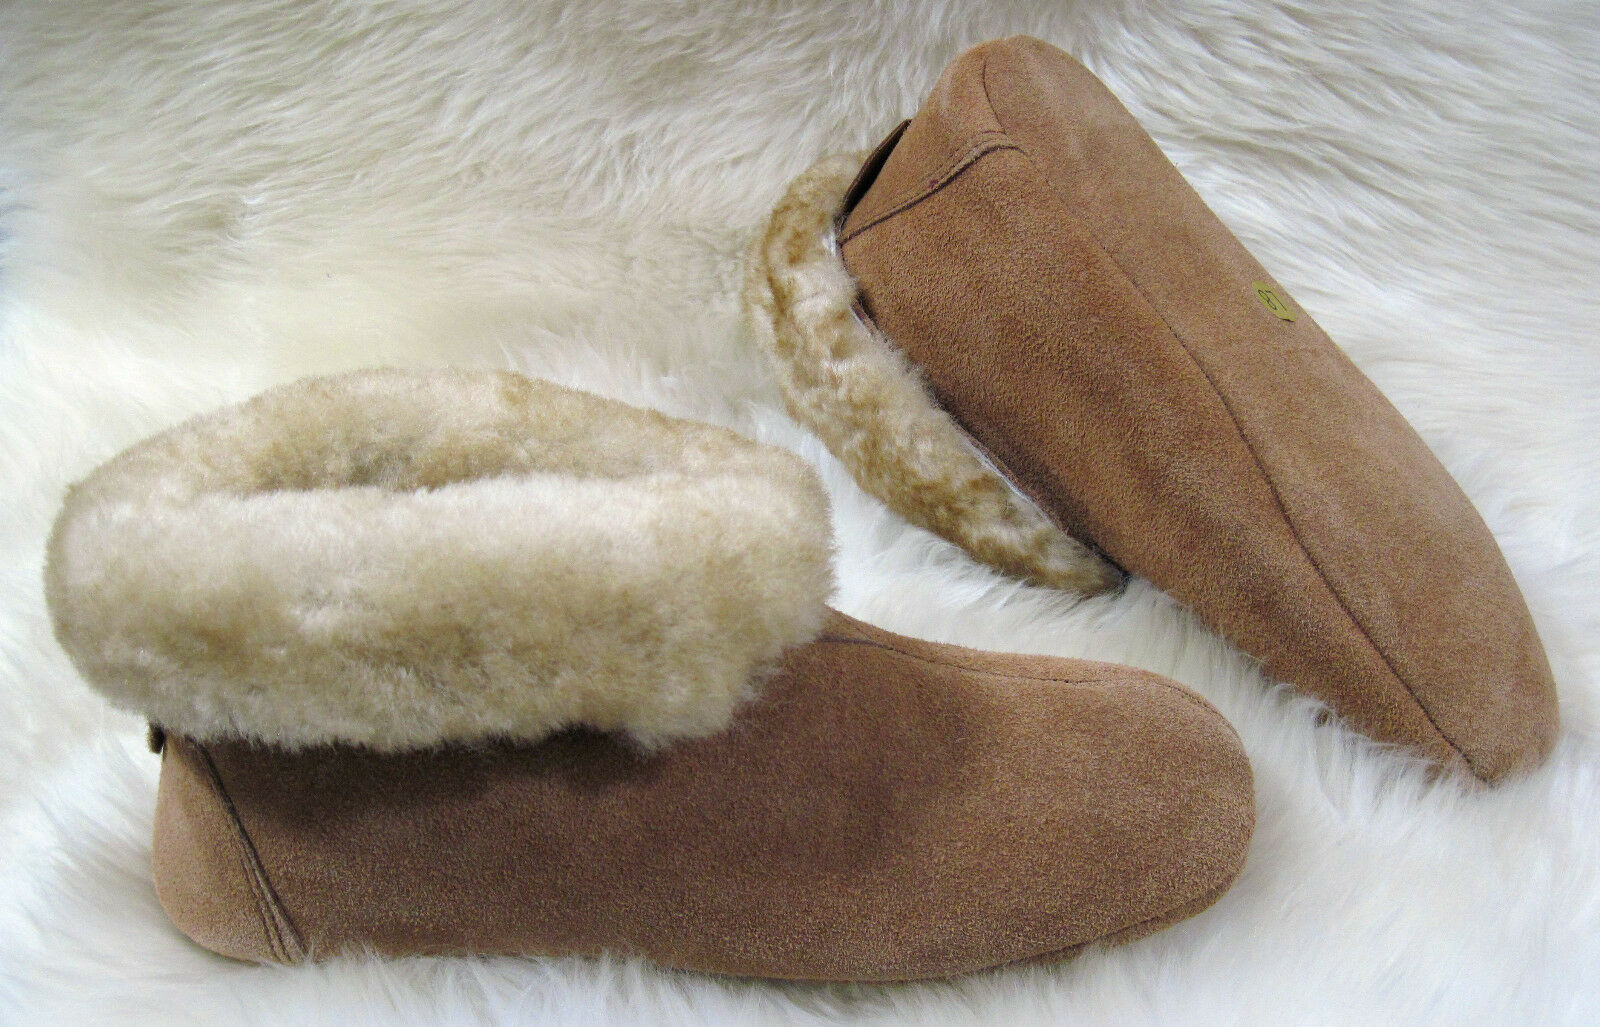 Uomo Sheepskin Slipper Soft Sole Pelle size 8 9 10 11 12 13 14 Wool House Boot